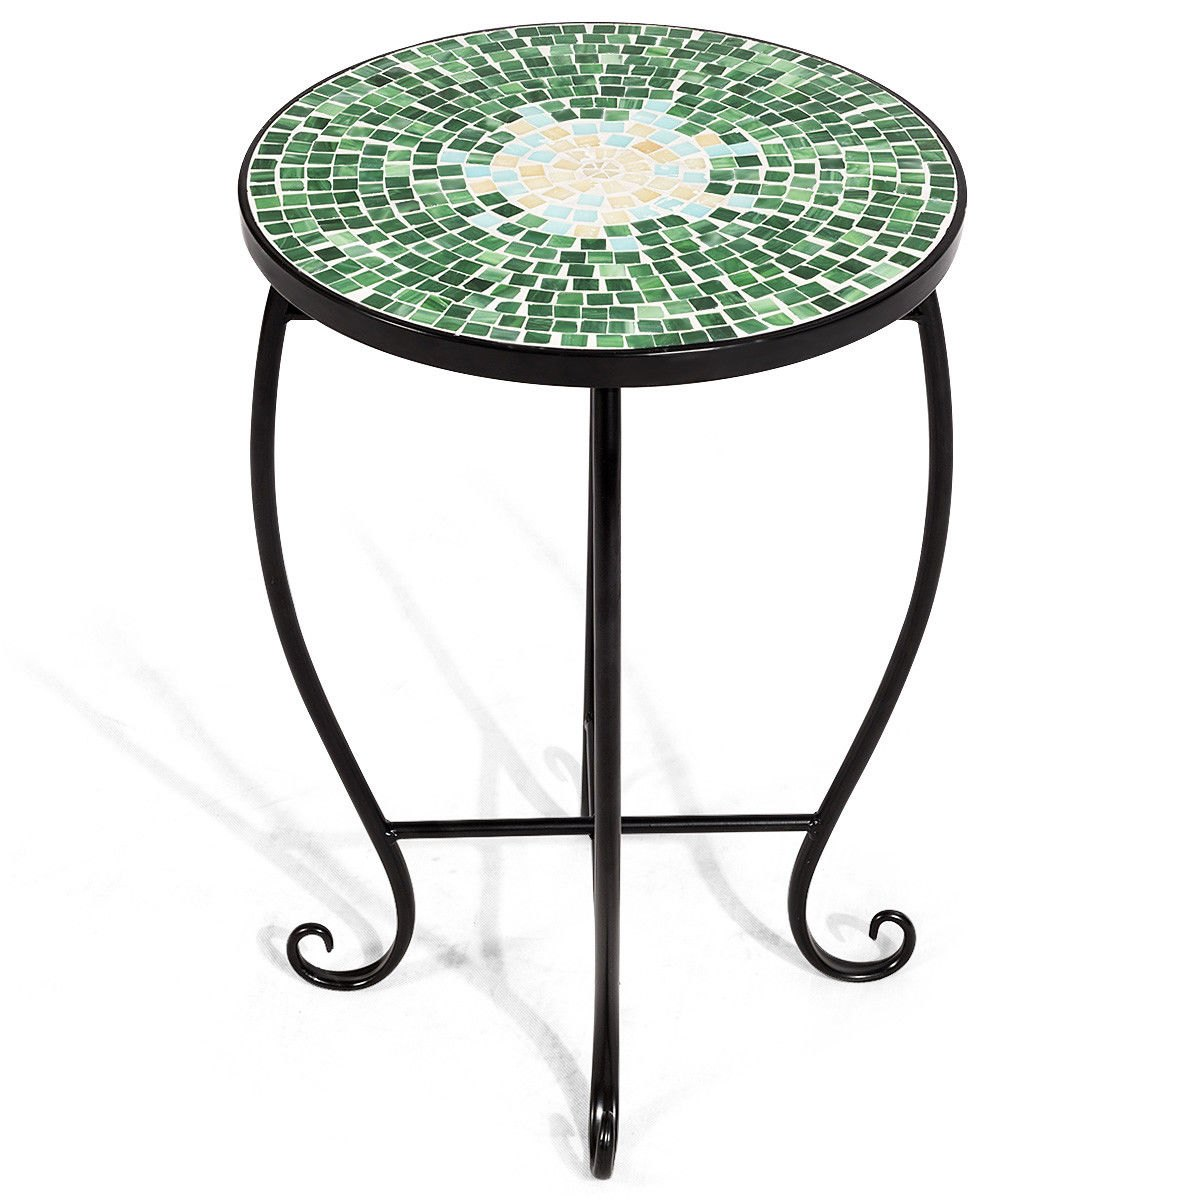 way outdoor indoor accent table plant stand scheme solar metal garden steel green winsome with drawer innovative coffee nesting tables cherry wood end chrome top adjustable ikea